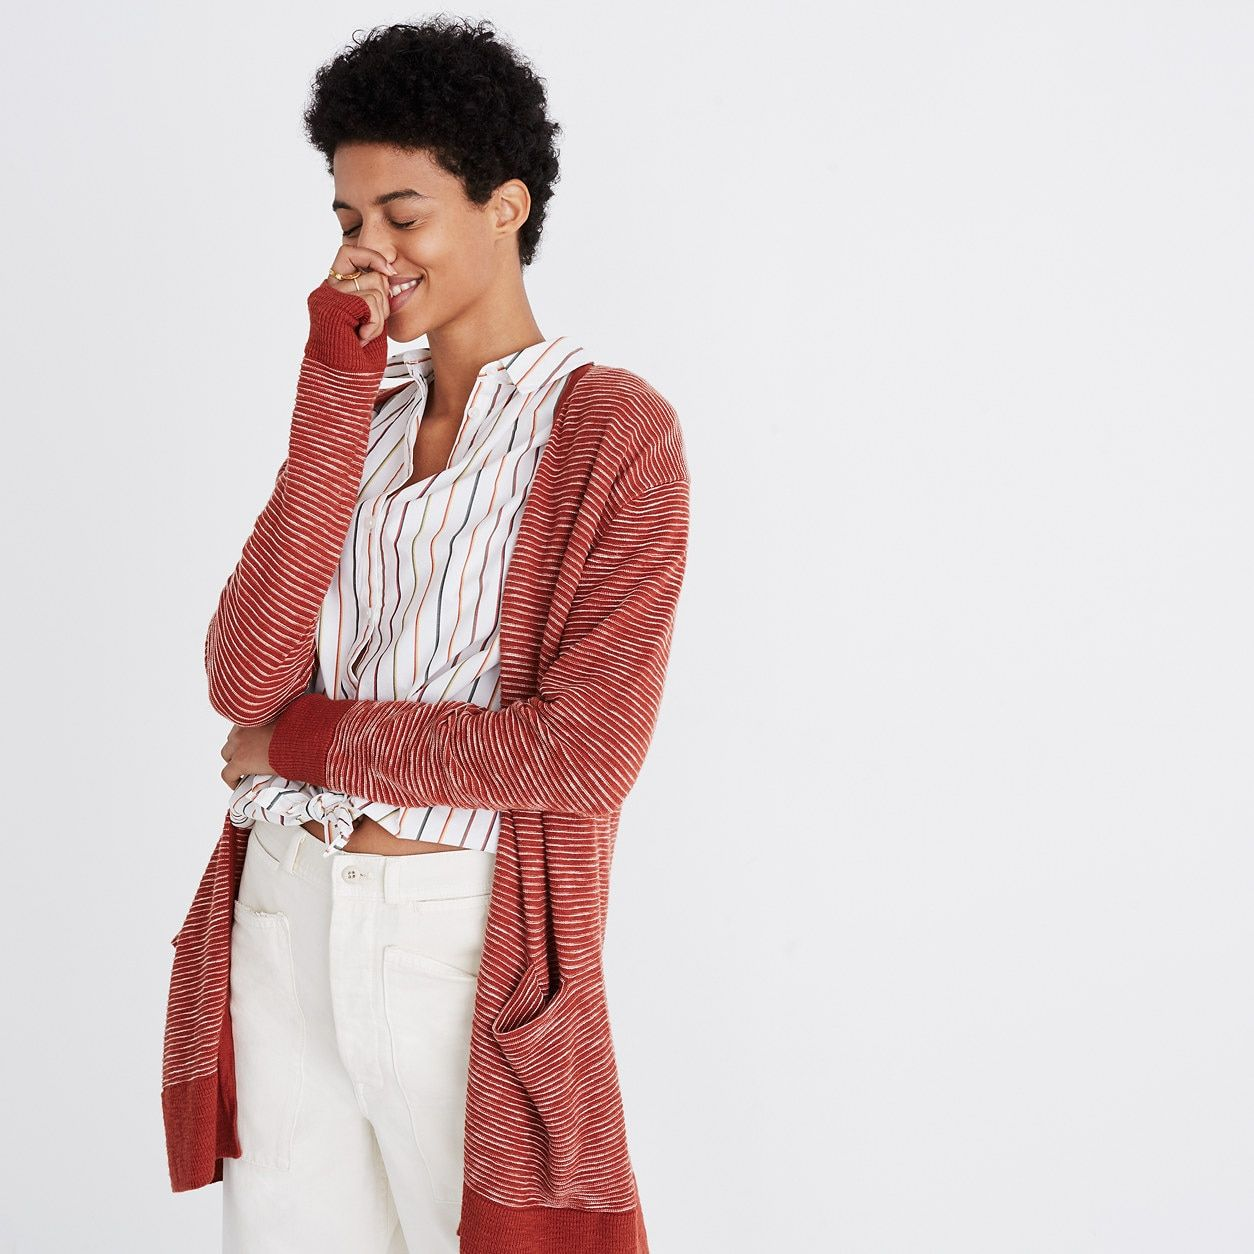 7a681e884774 Summer Ryder Cardigan Sweater in Stripe : cardigans & sweater-jackets |  Madewell